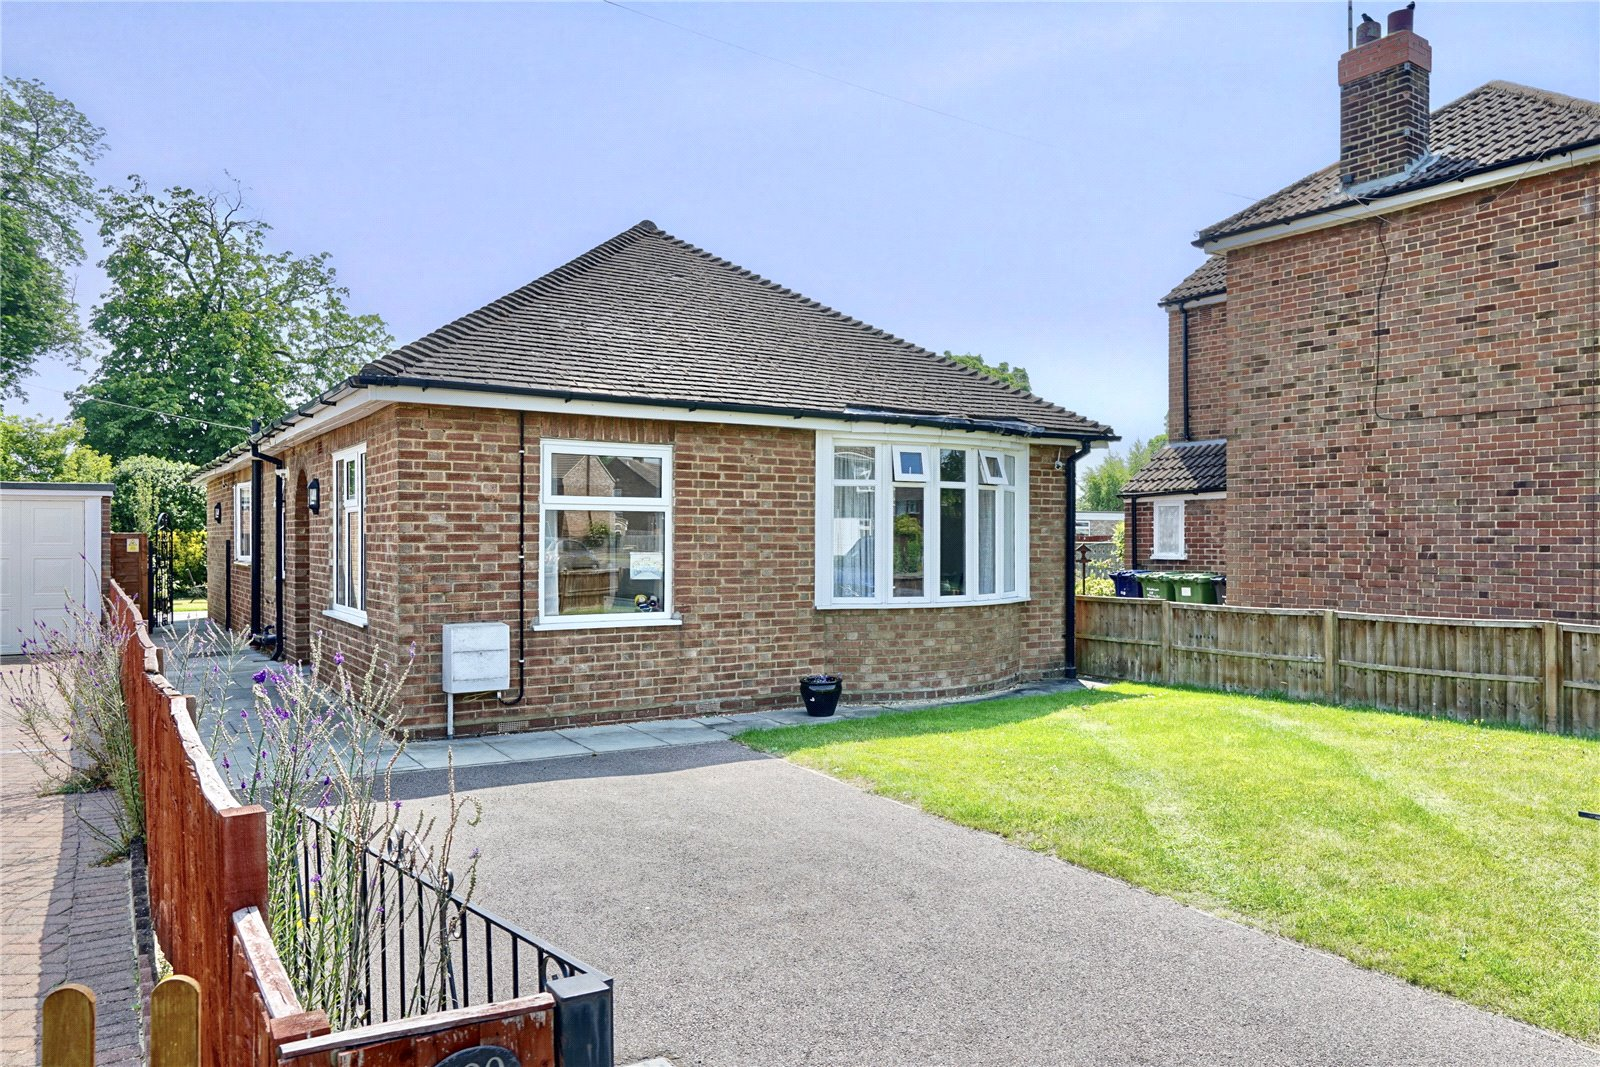 3 bed bungalow for sale in St Neots Road, Eaton Ford, PE19